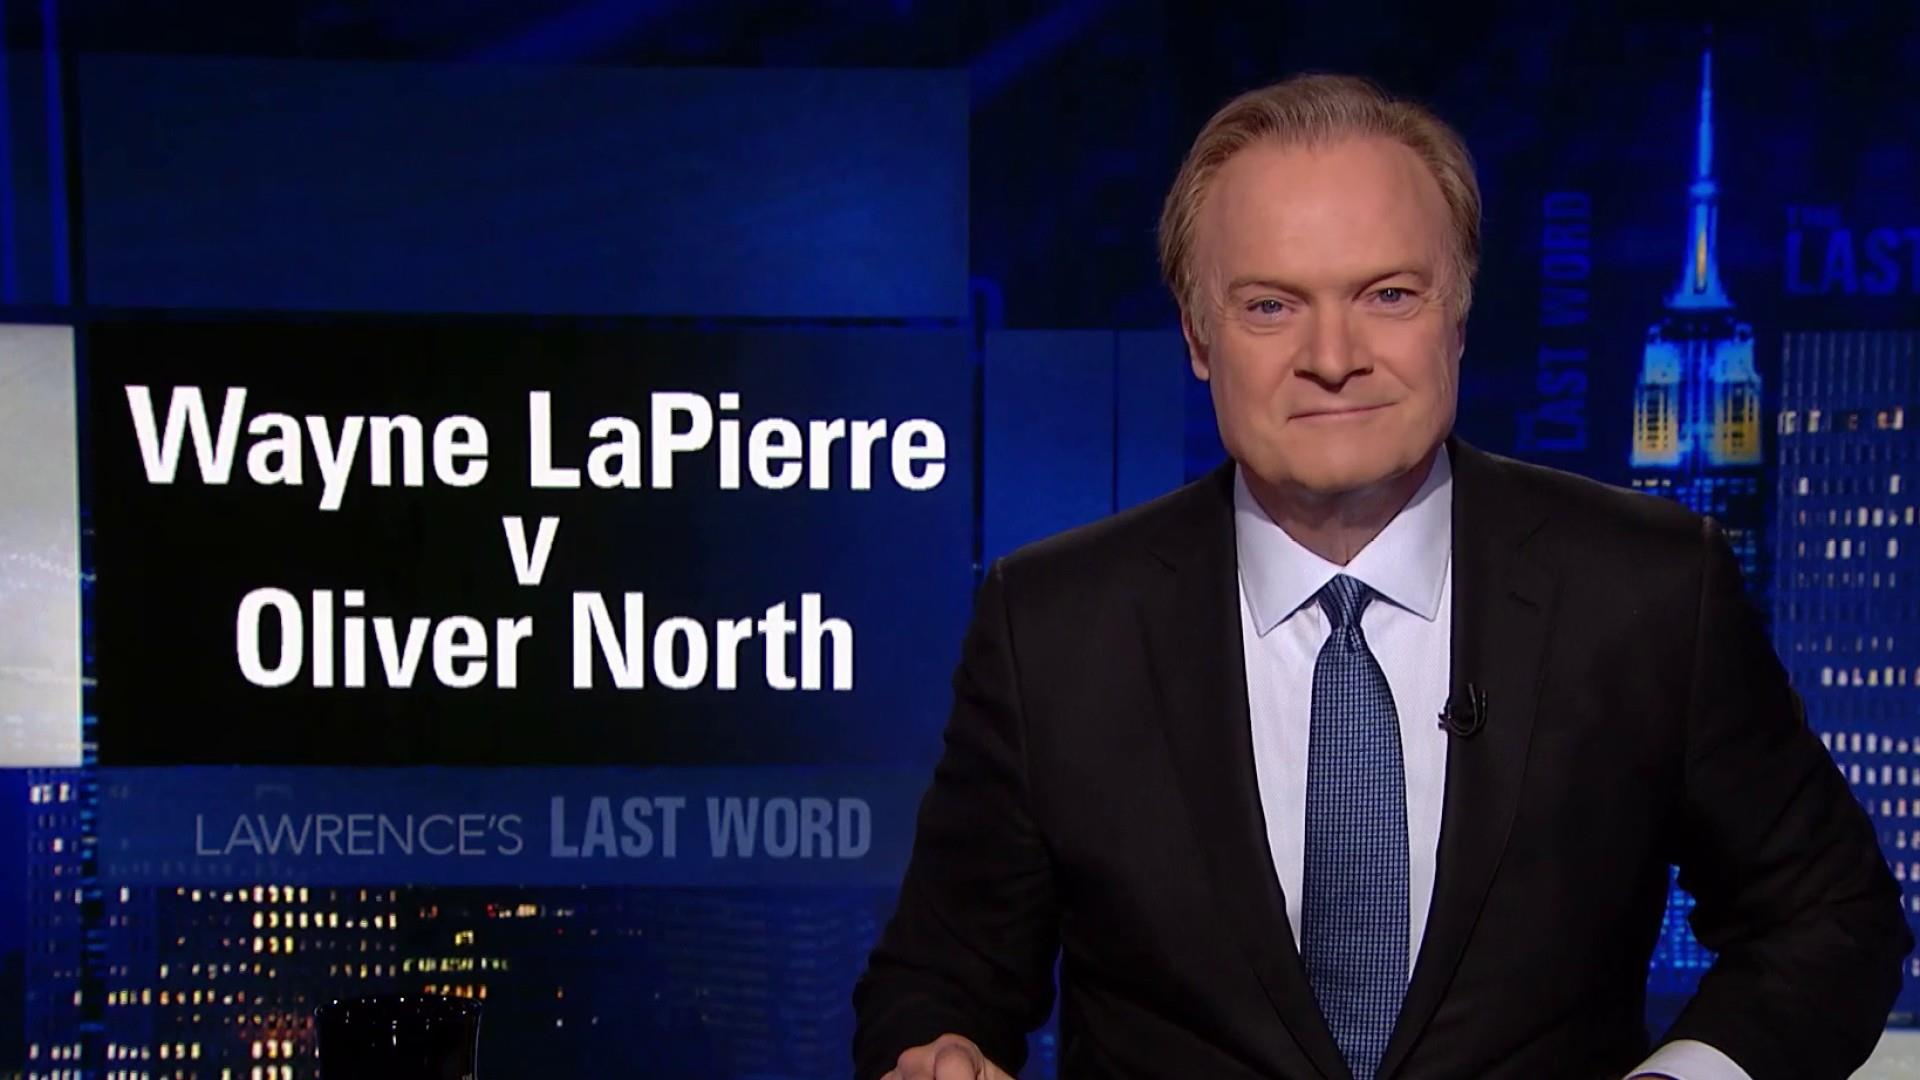 Lawrence's Last Word: Wayne LaPierre v Oliver North